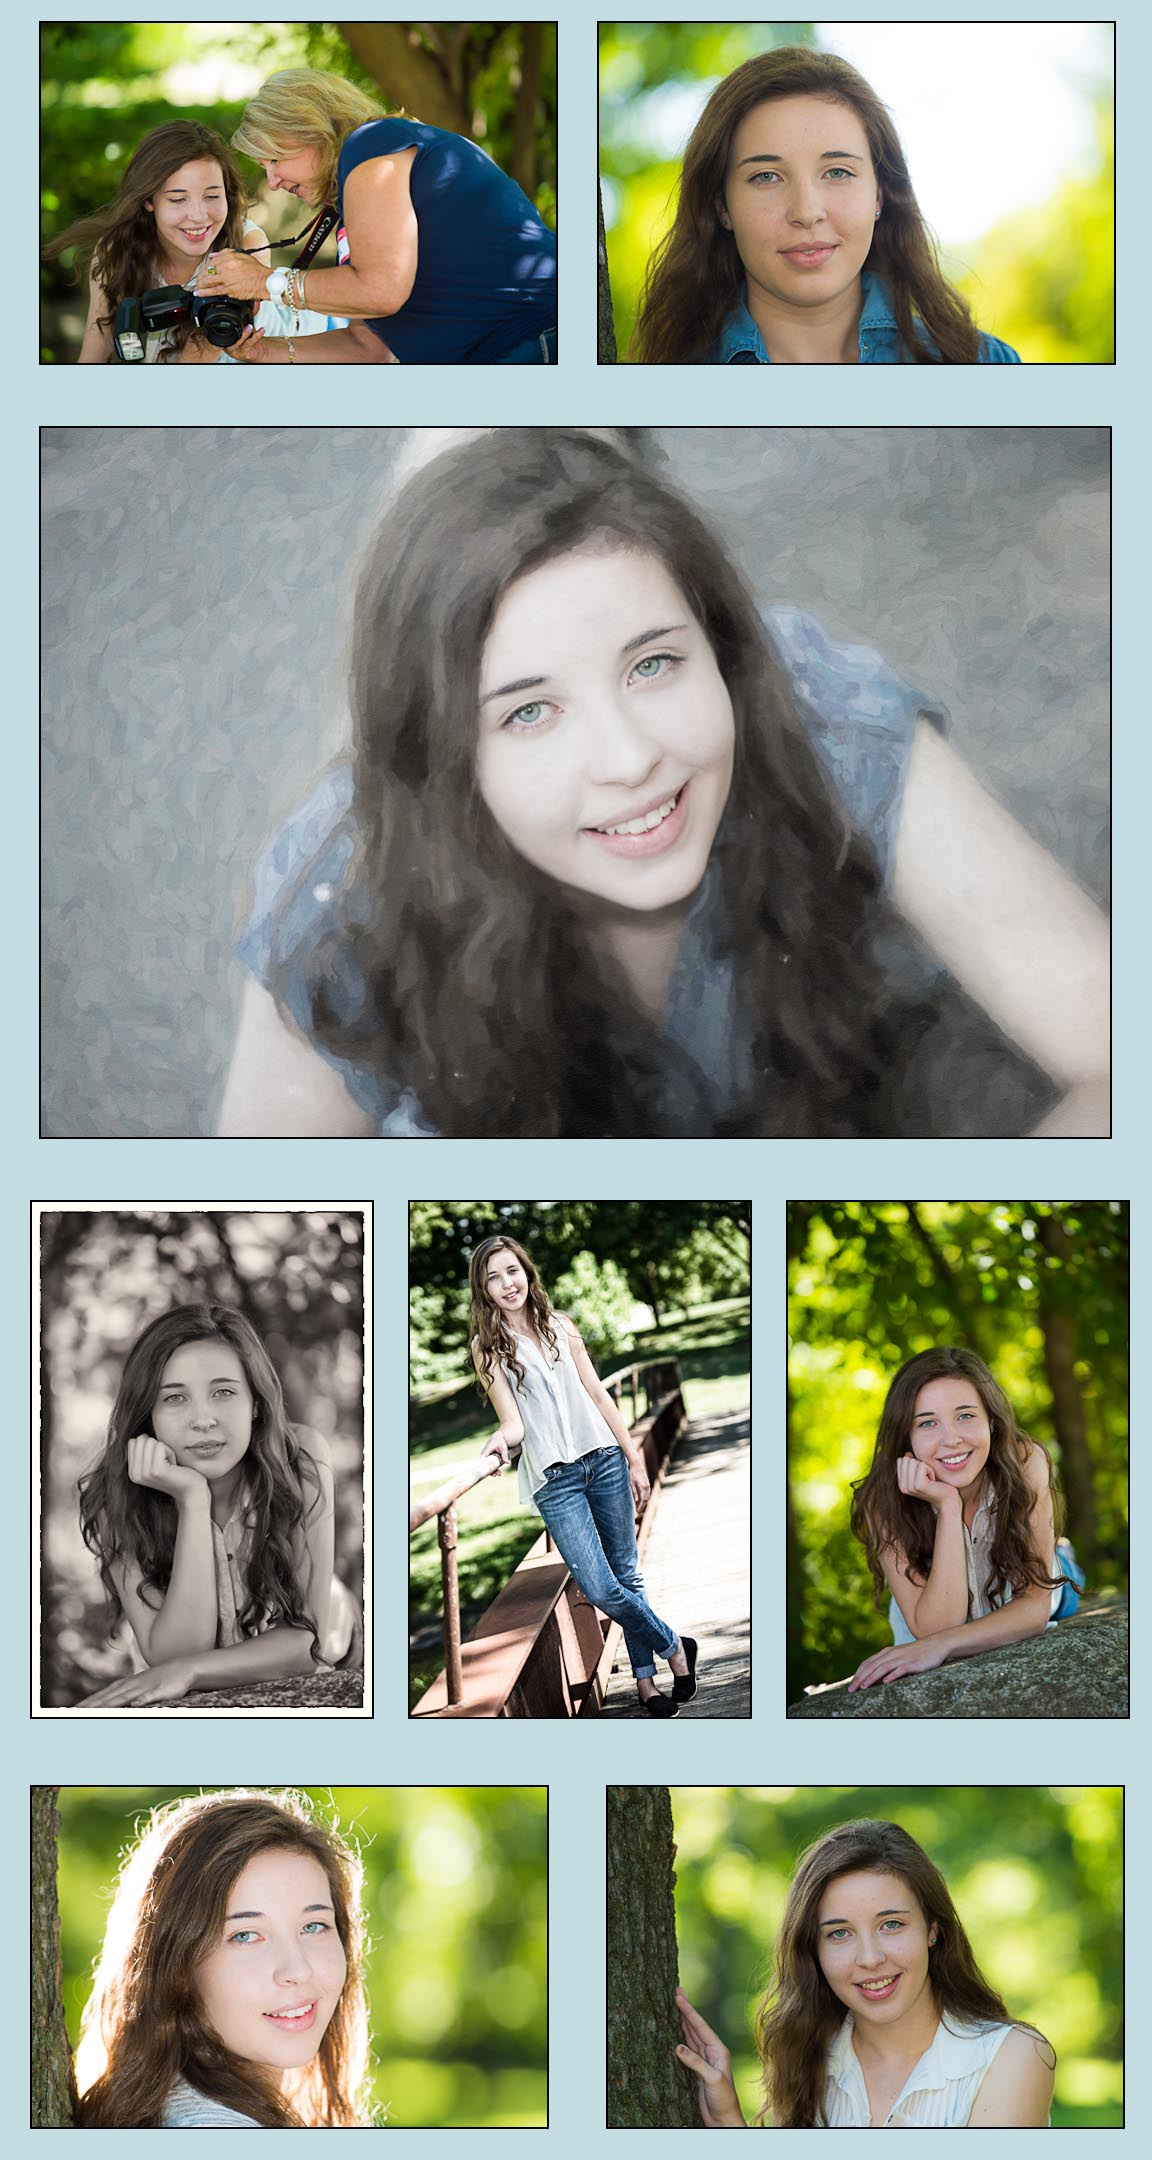 Robert DiTommaso Photography Portrait Workshop Collage